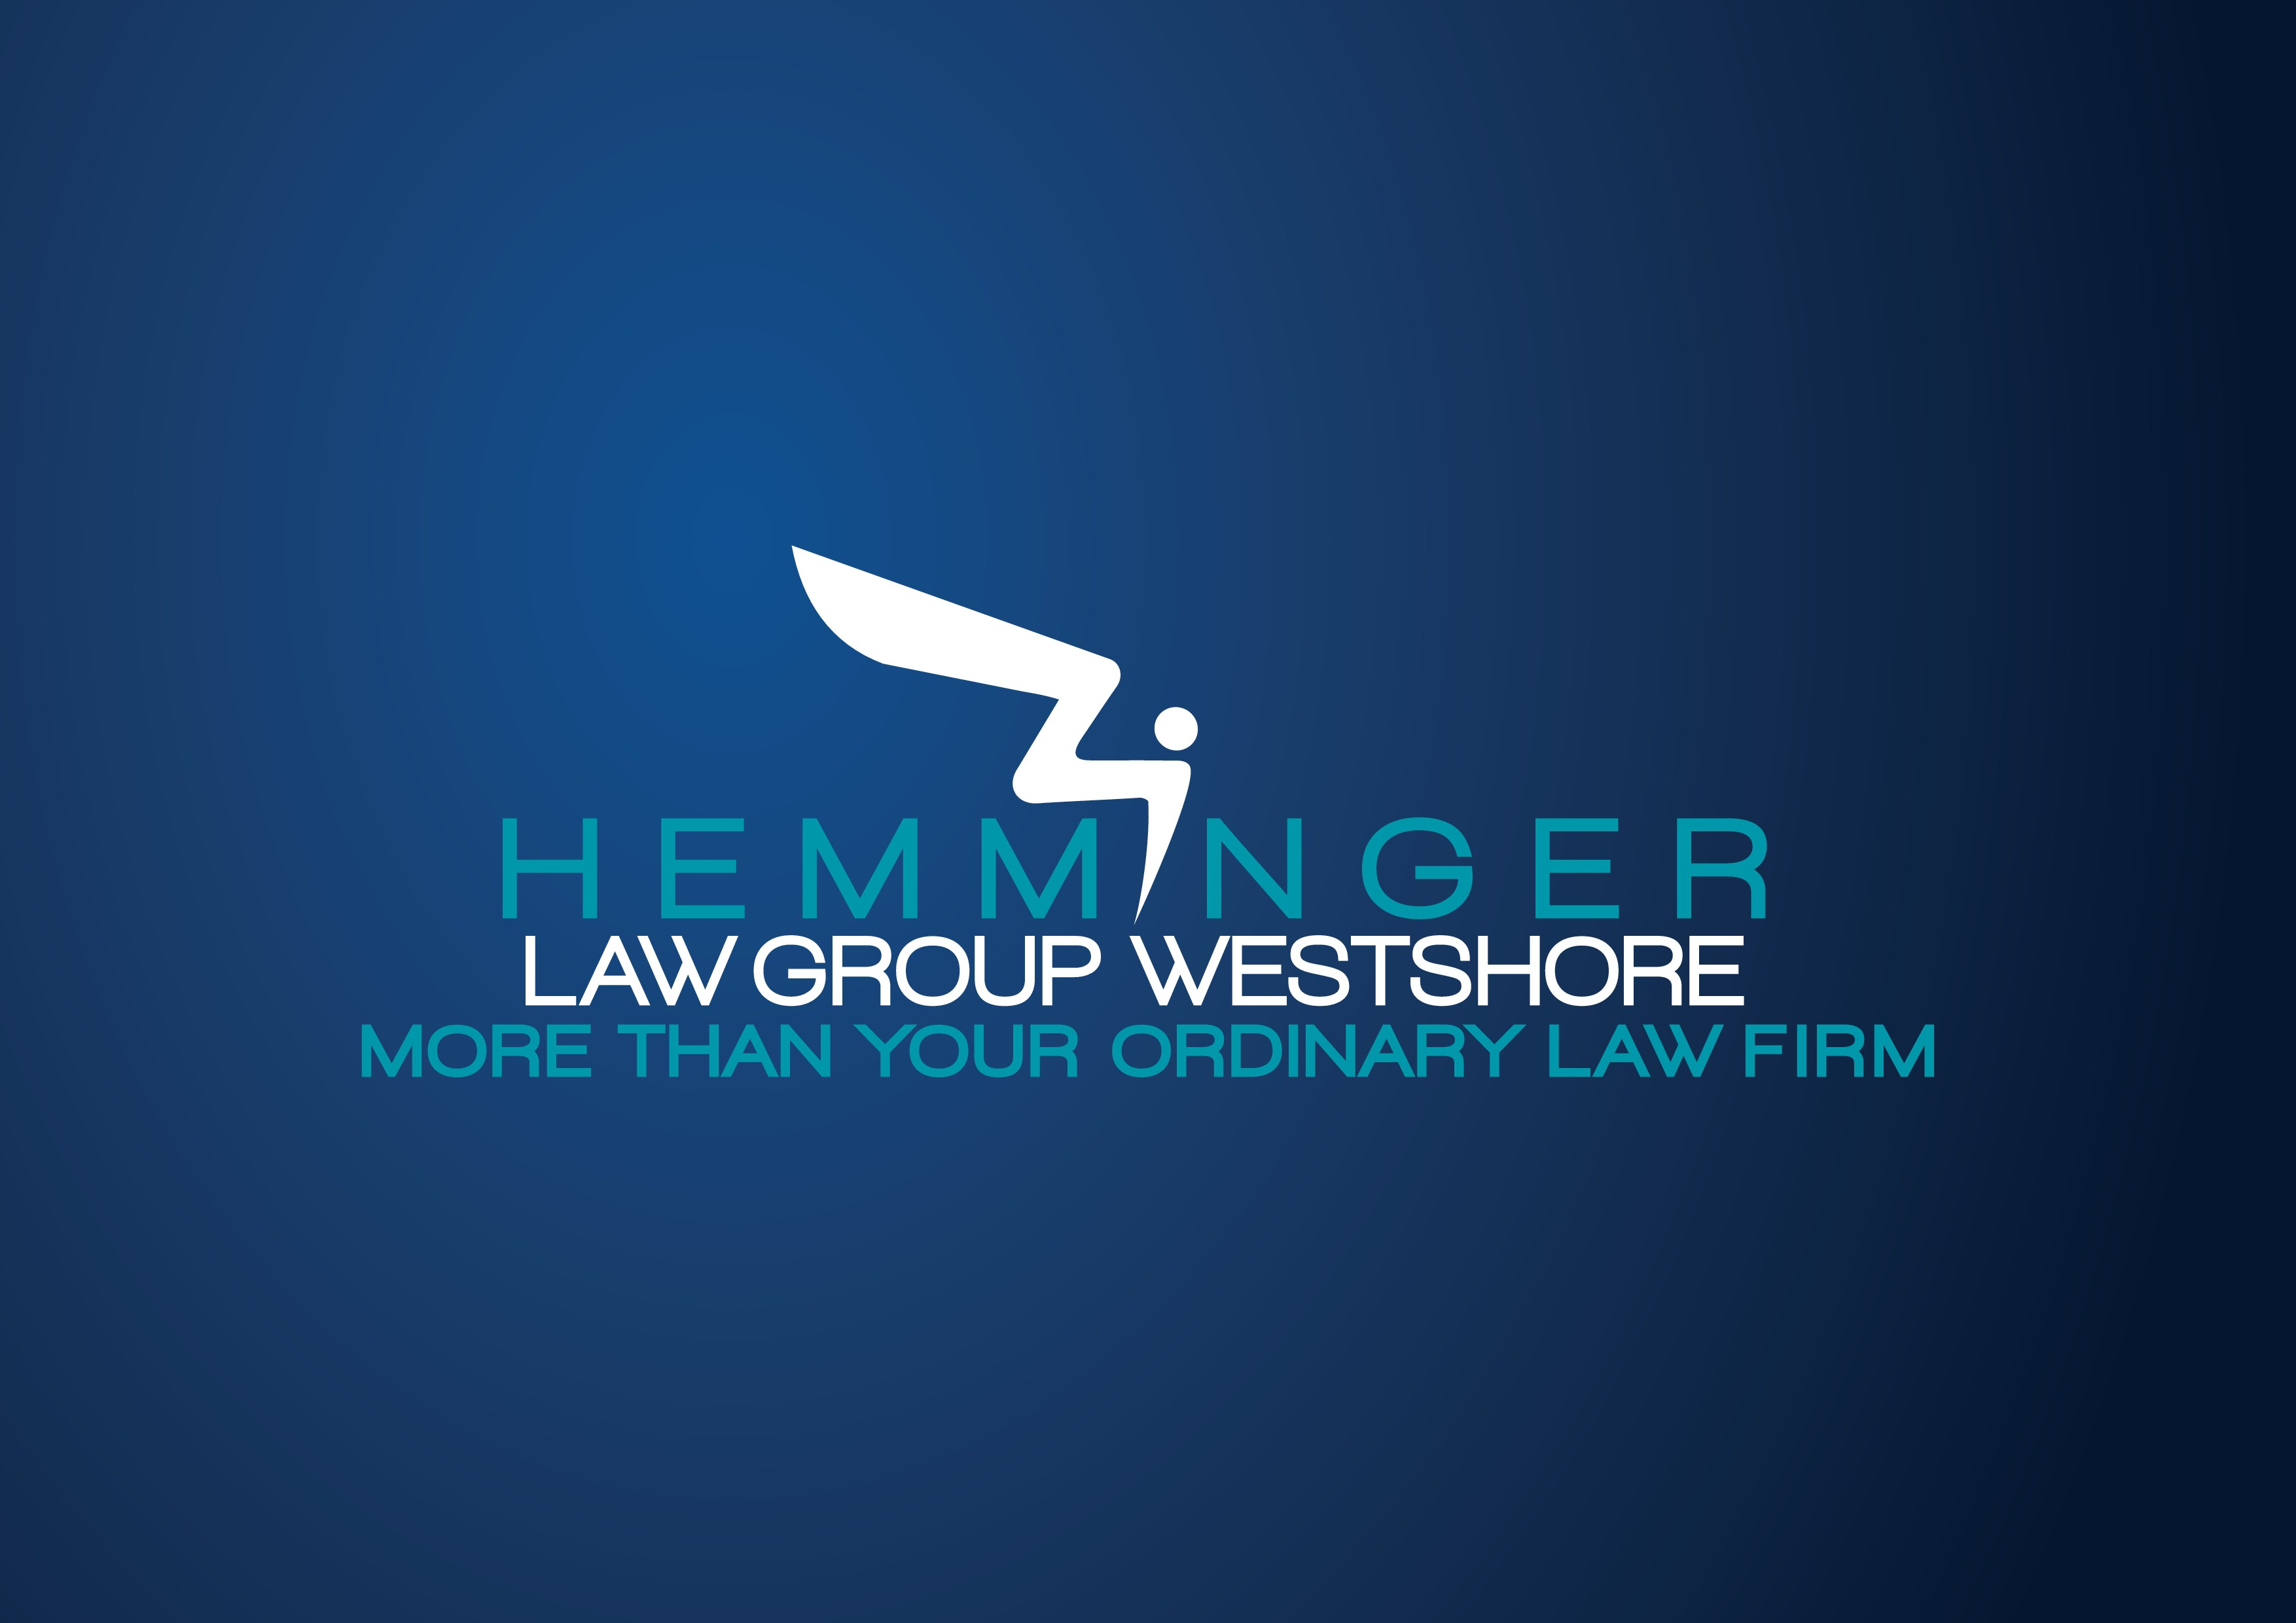 For More Than Your Ordinary Law Firm